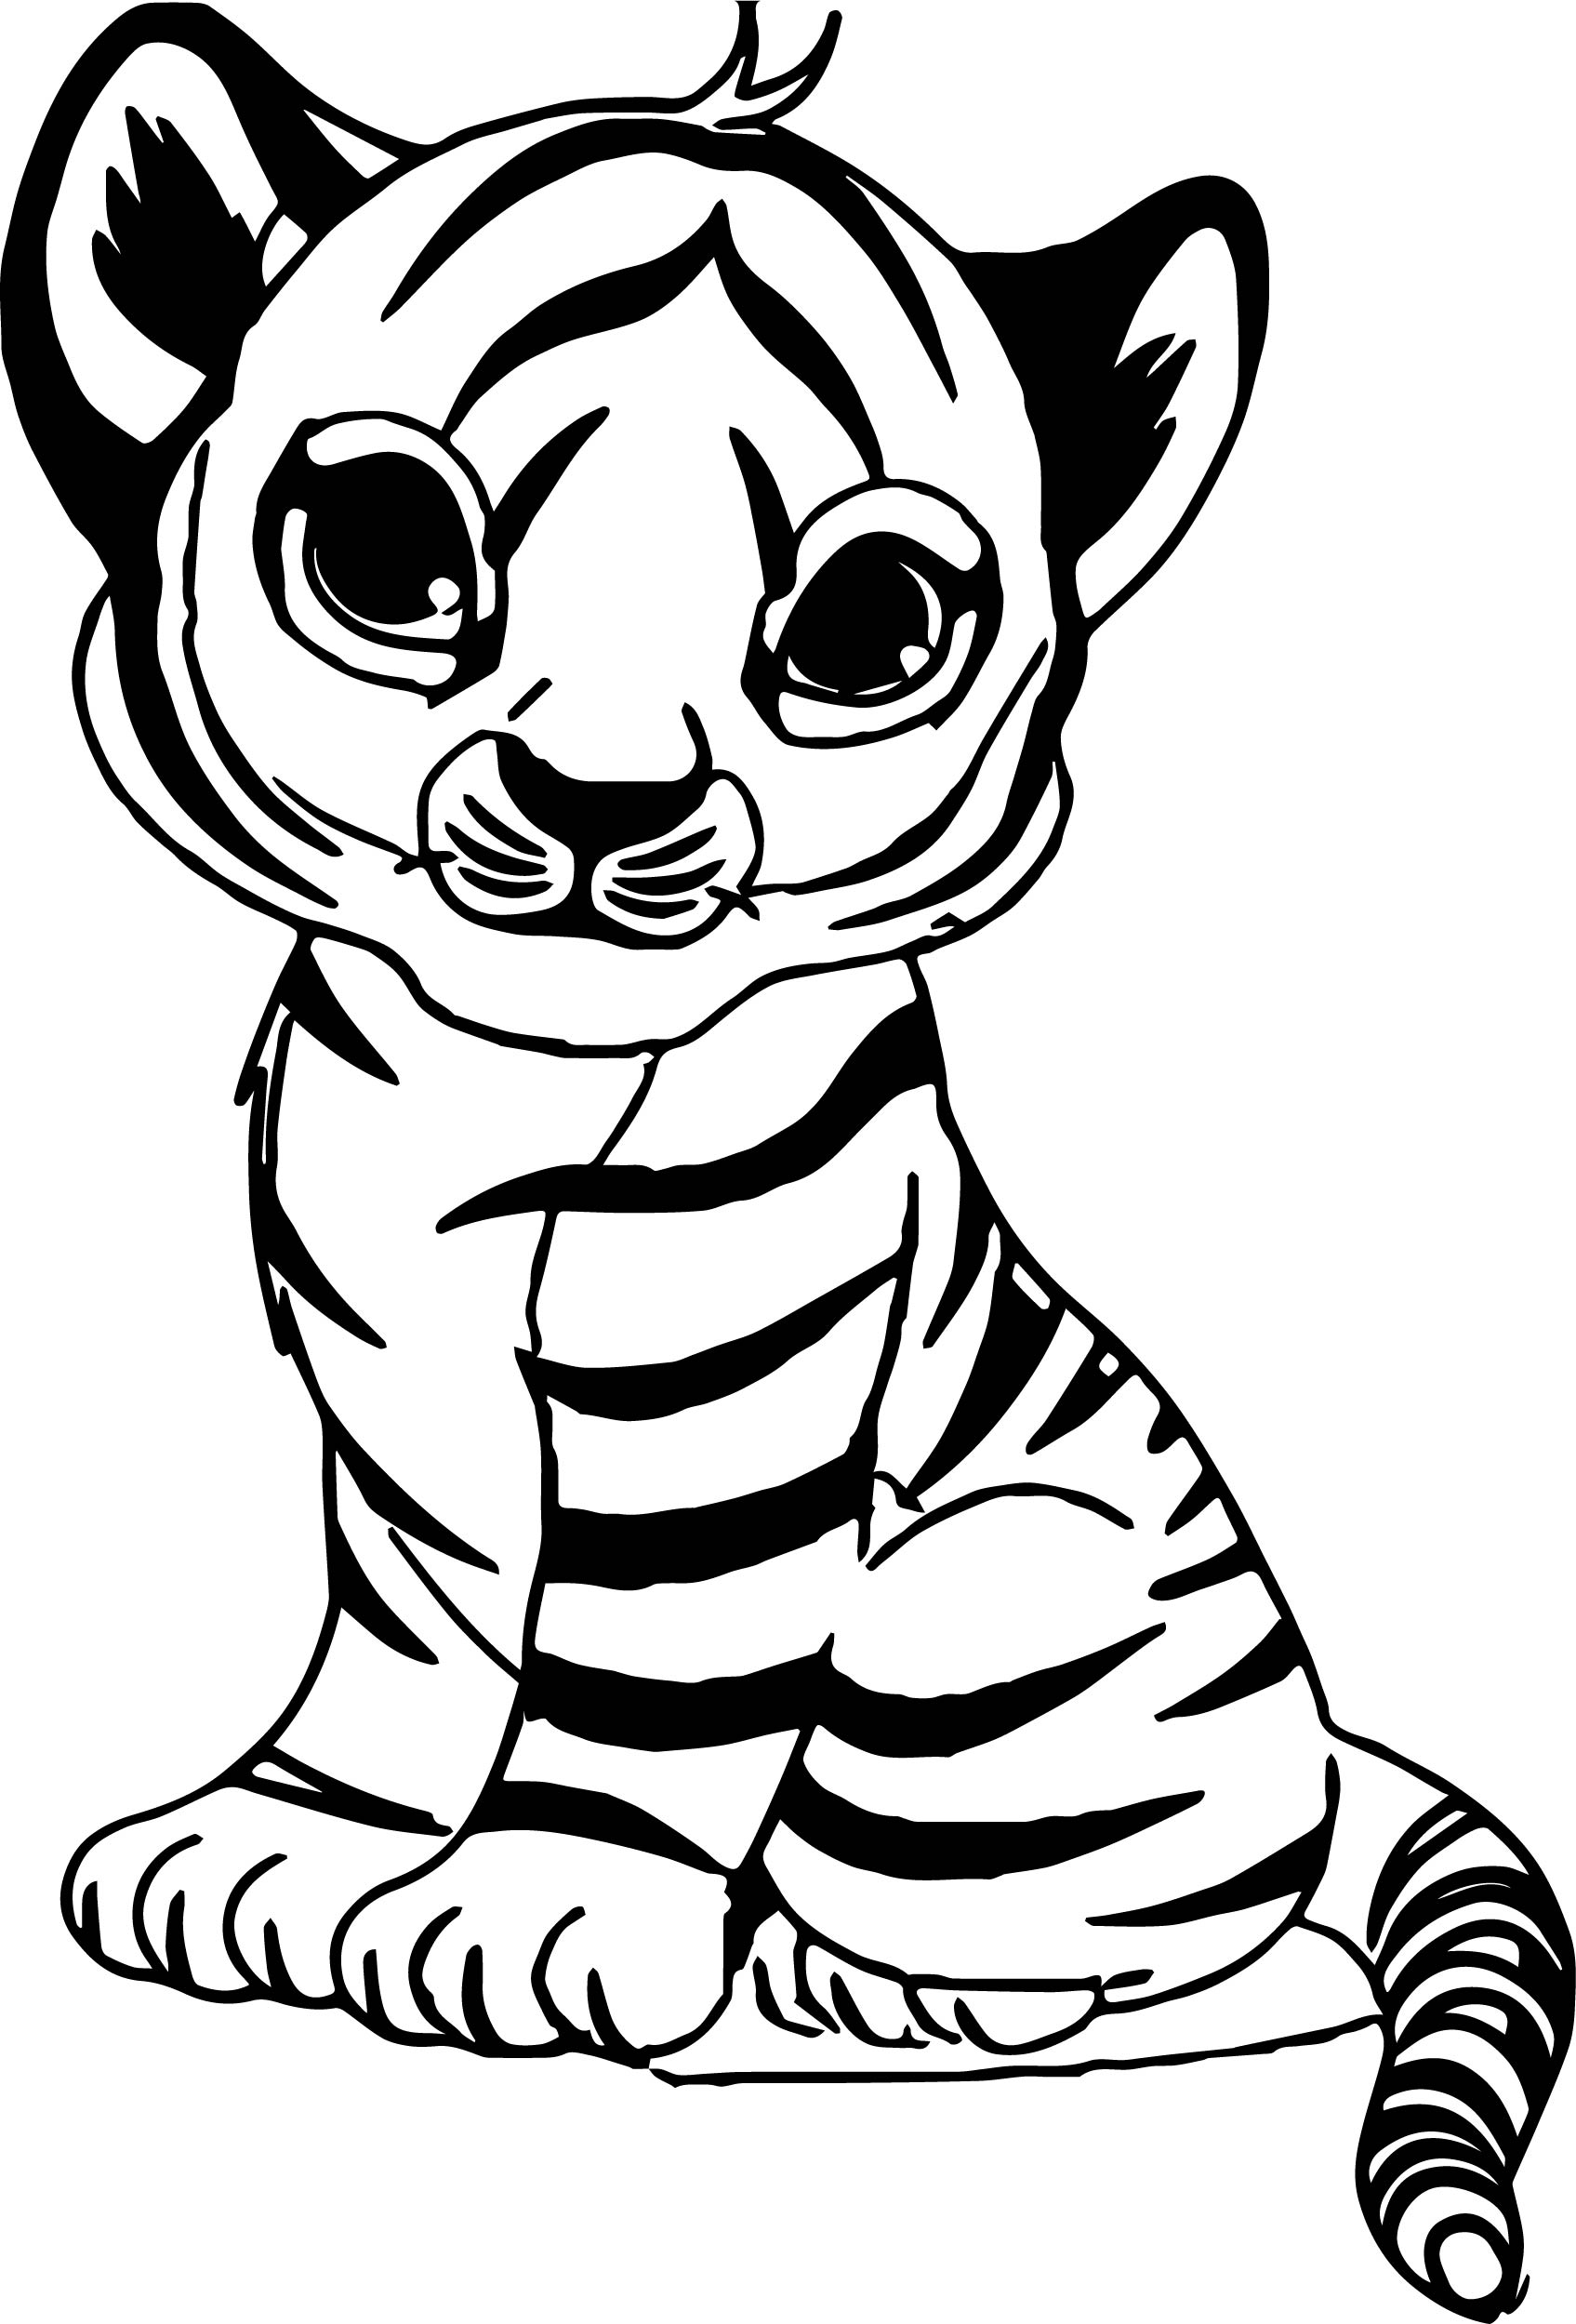 Tiger Football Coloring Pages. Cute Baby Tiger Coloring Page  Wecoloringpage